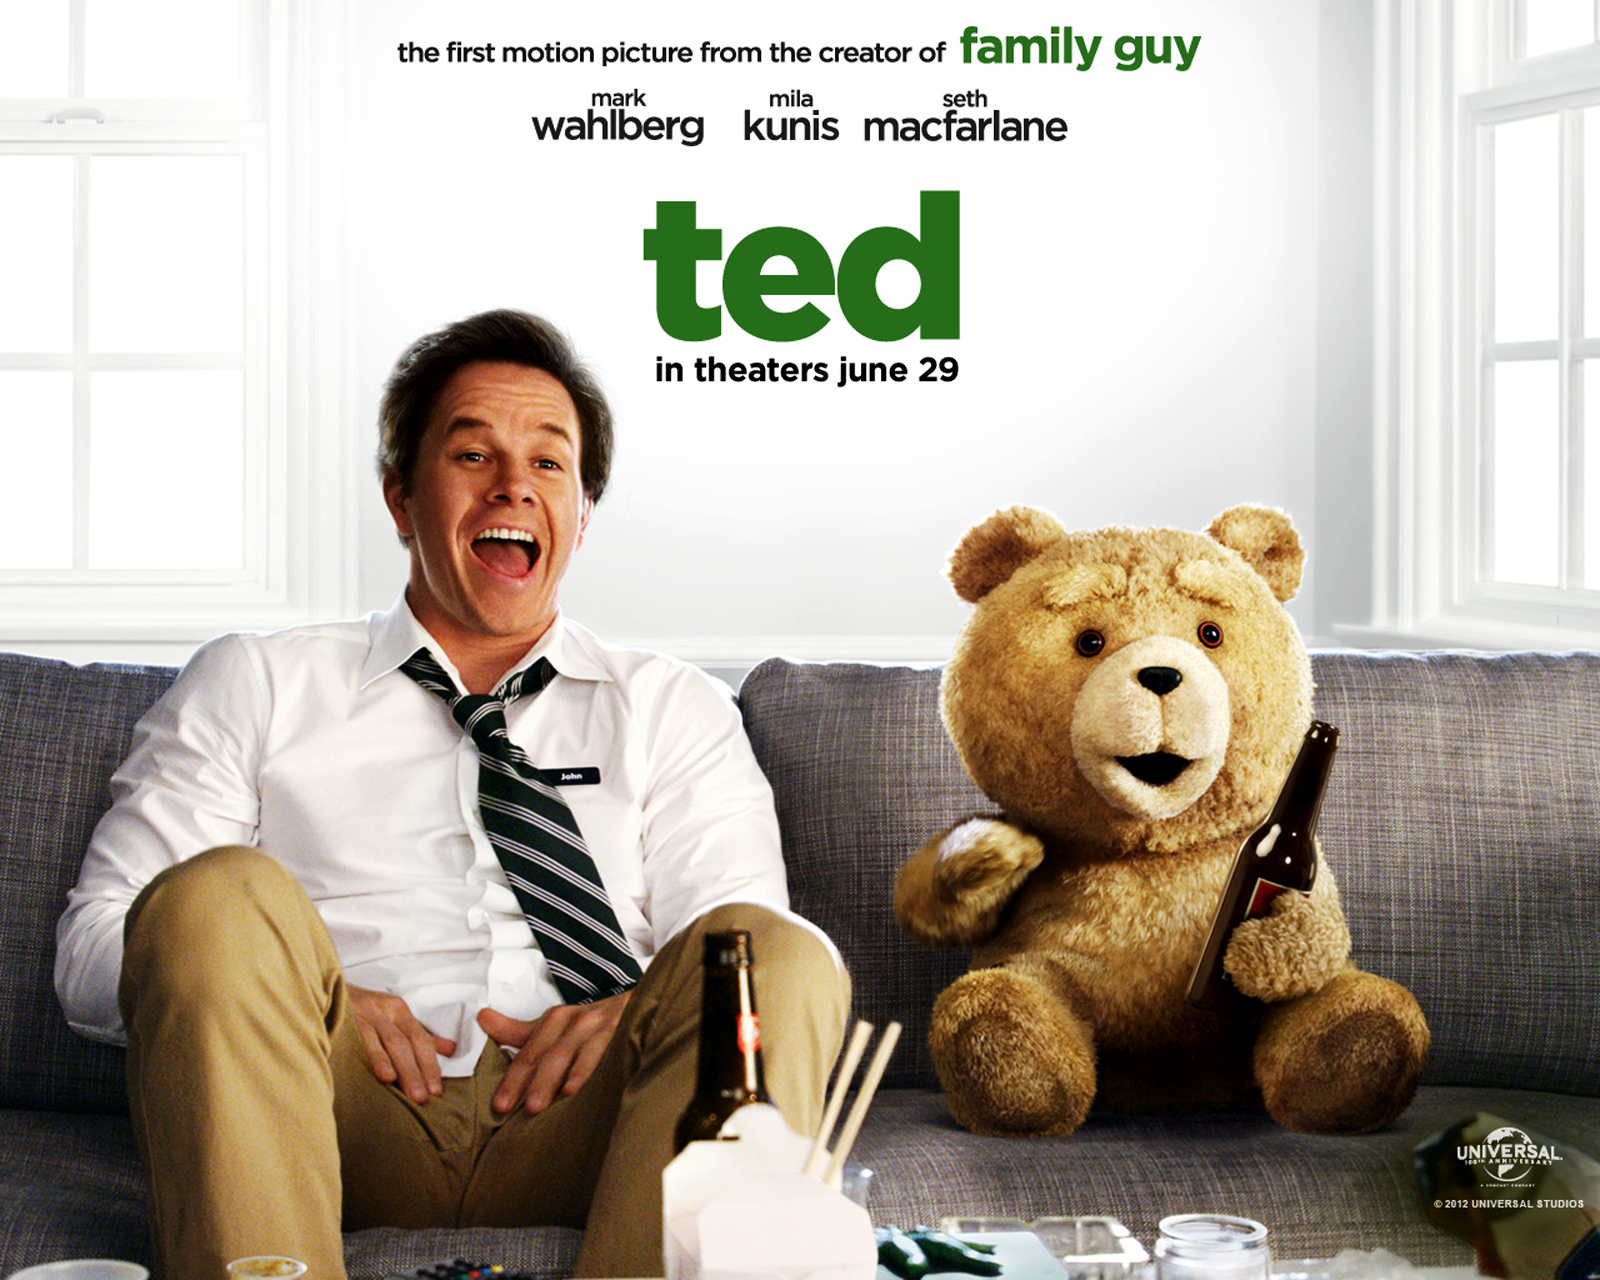 http://1.bp.blogspot.com/-1TRf_g-IE1I/UPdgJ_0nugI/AAAAAAAAAWE/3vdmyzvg7b0/s1600/Mark_Wahlberg_and_Ted_Ted_Movie_HD_Wallpaper-Vvallpaper.Net.jpeg